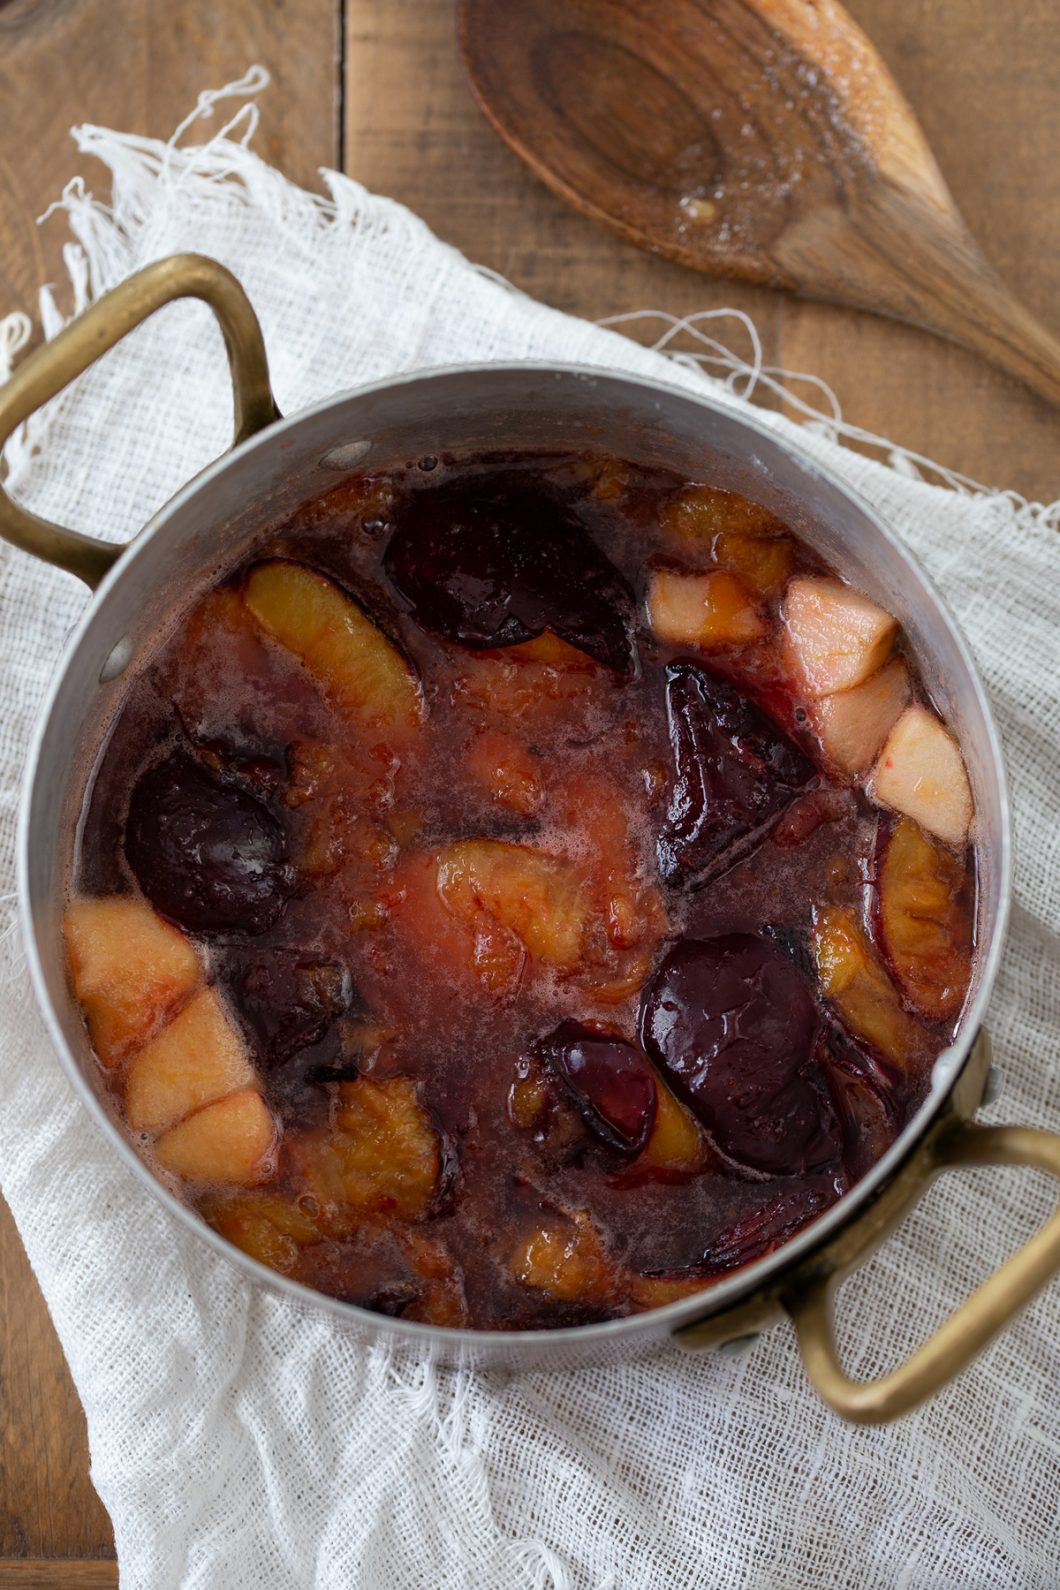 Cooked plums and apples.